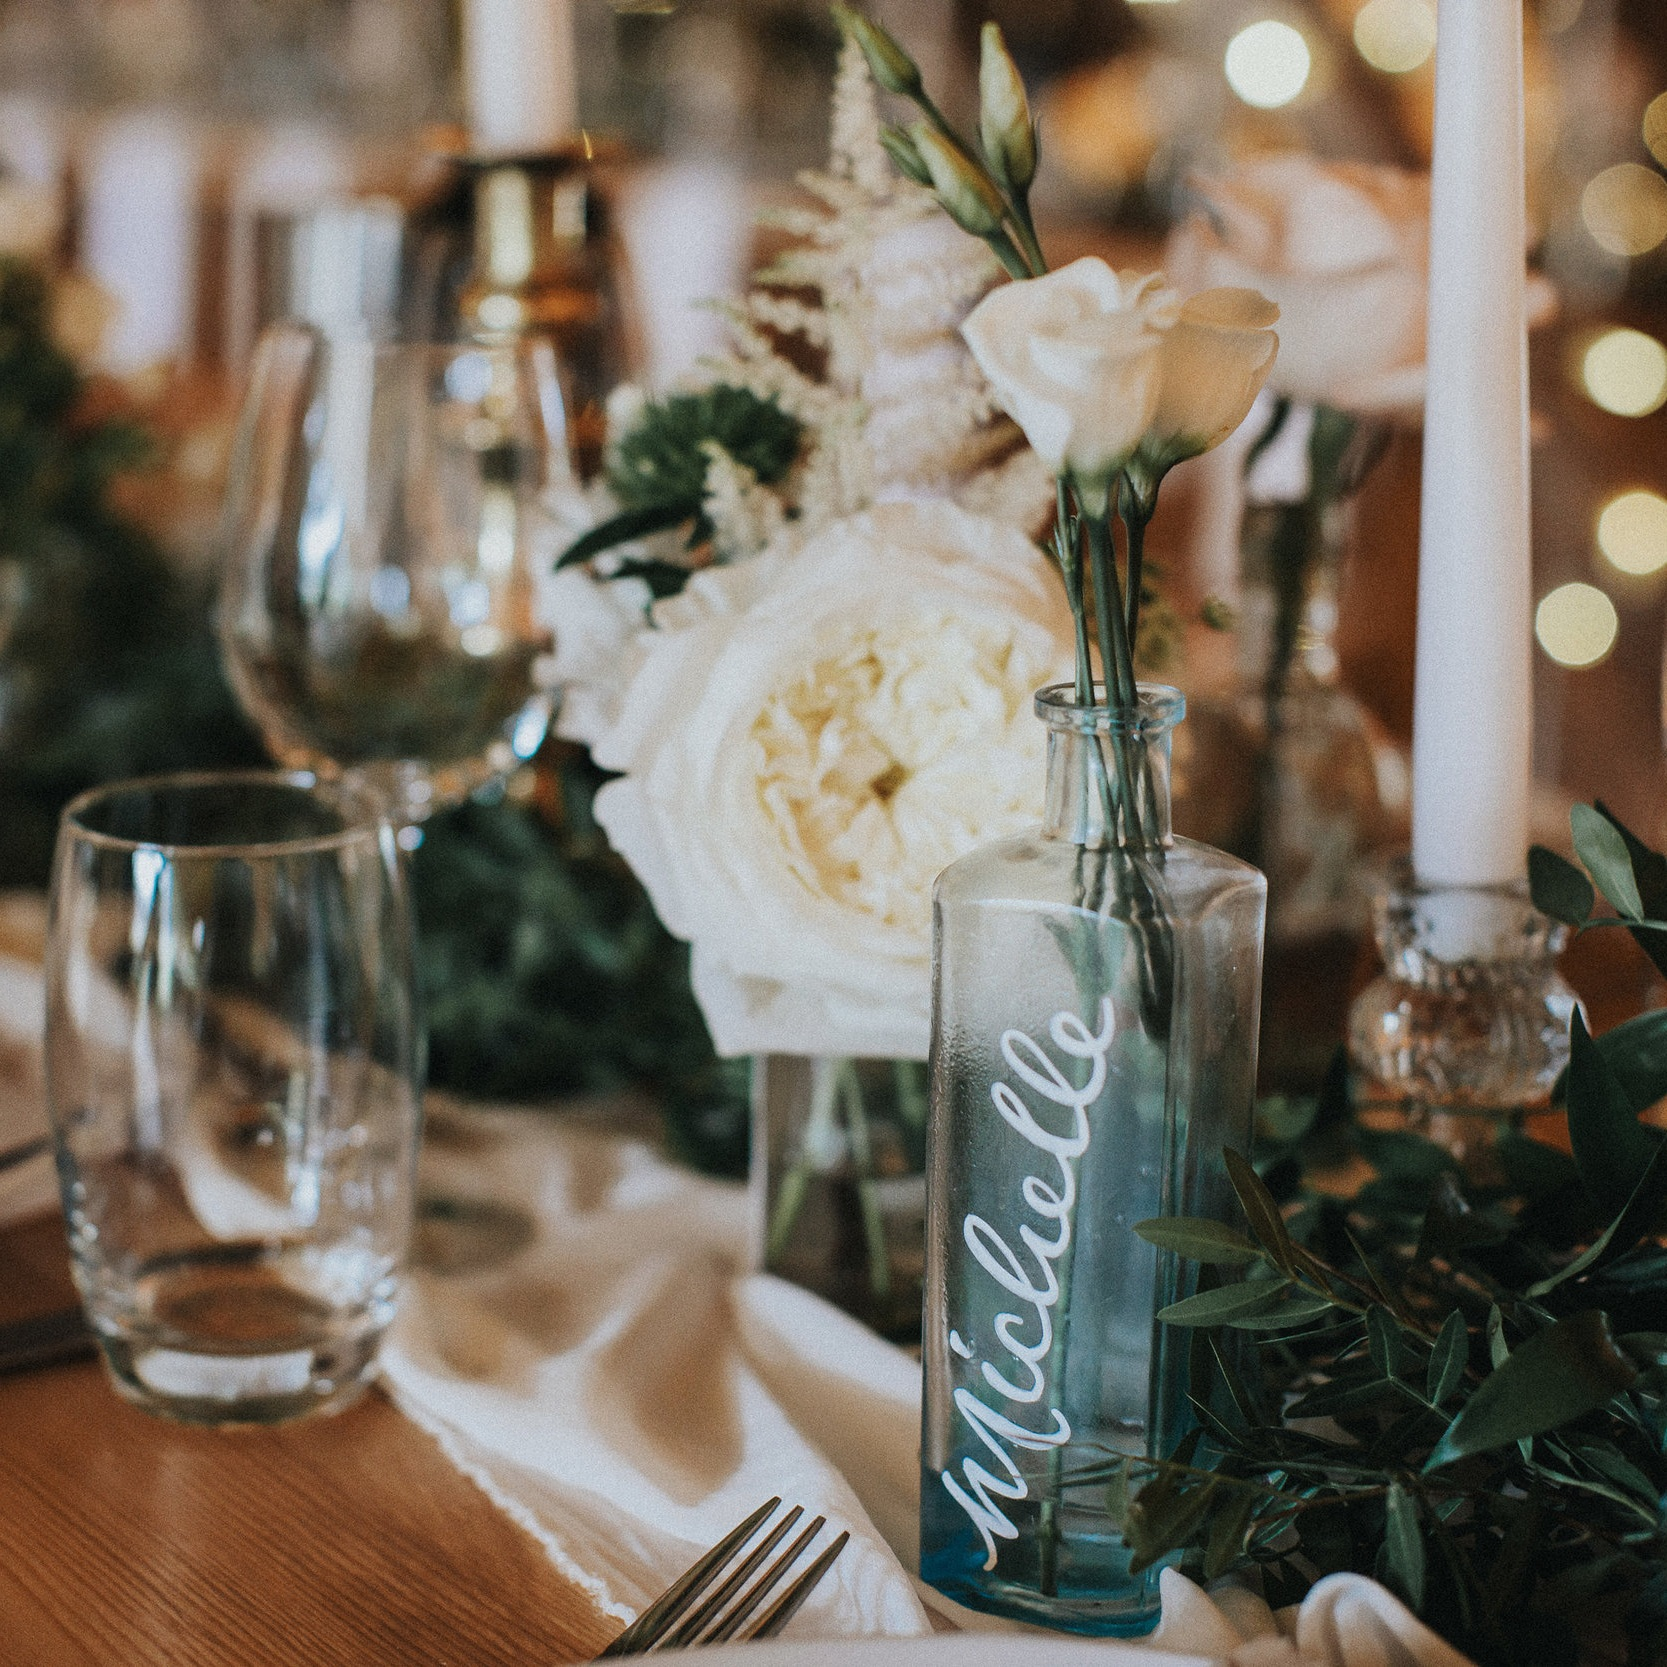 Personalised vintage glass bottles sourced by the couple made a beautiful keepsake for all the guests to keep. Captured by Matt Horan Photography.